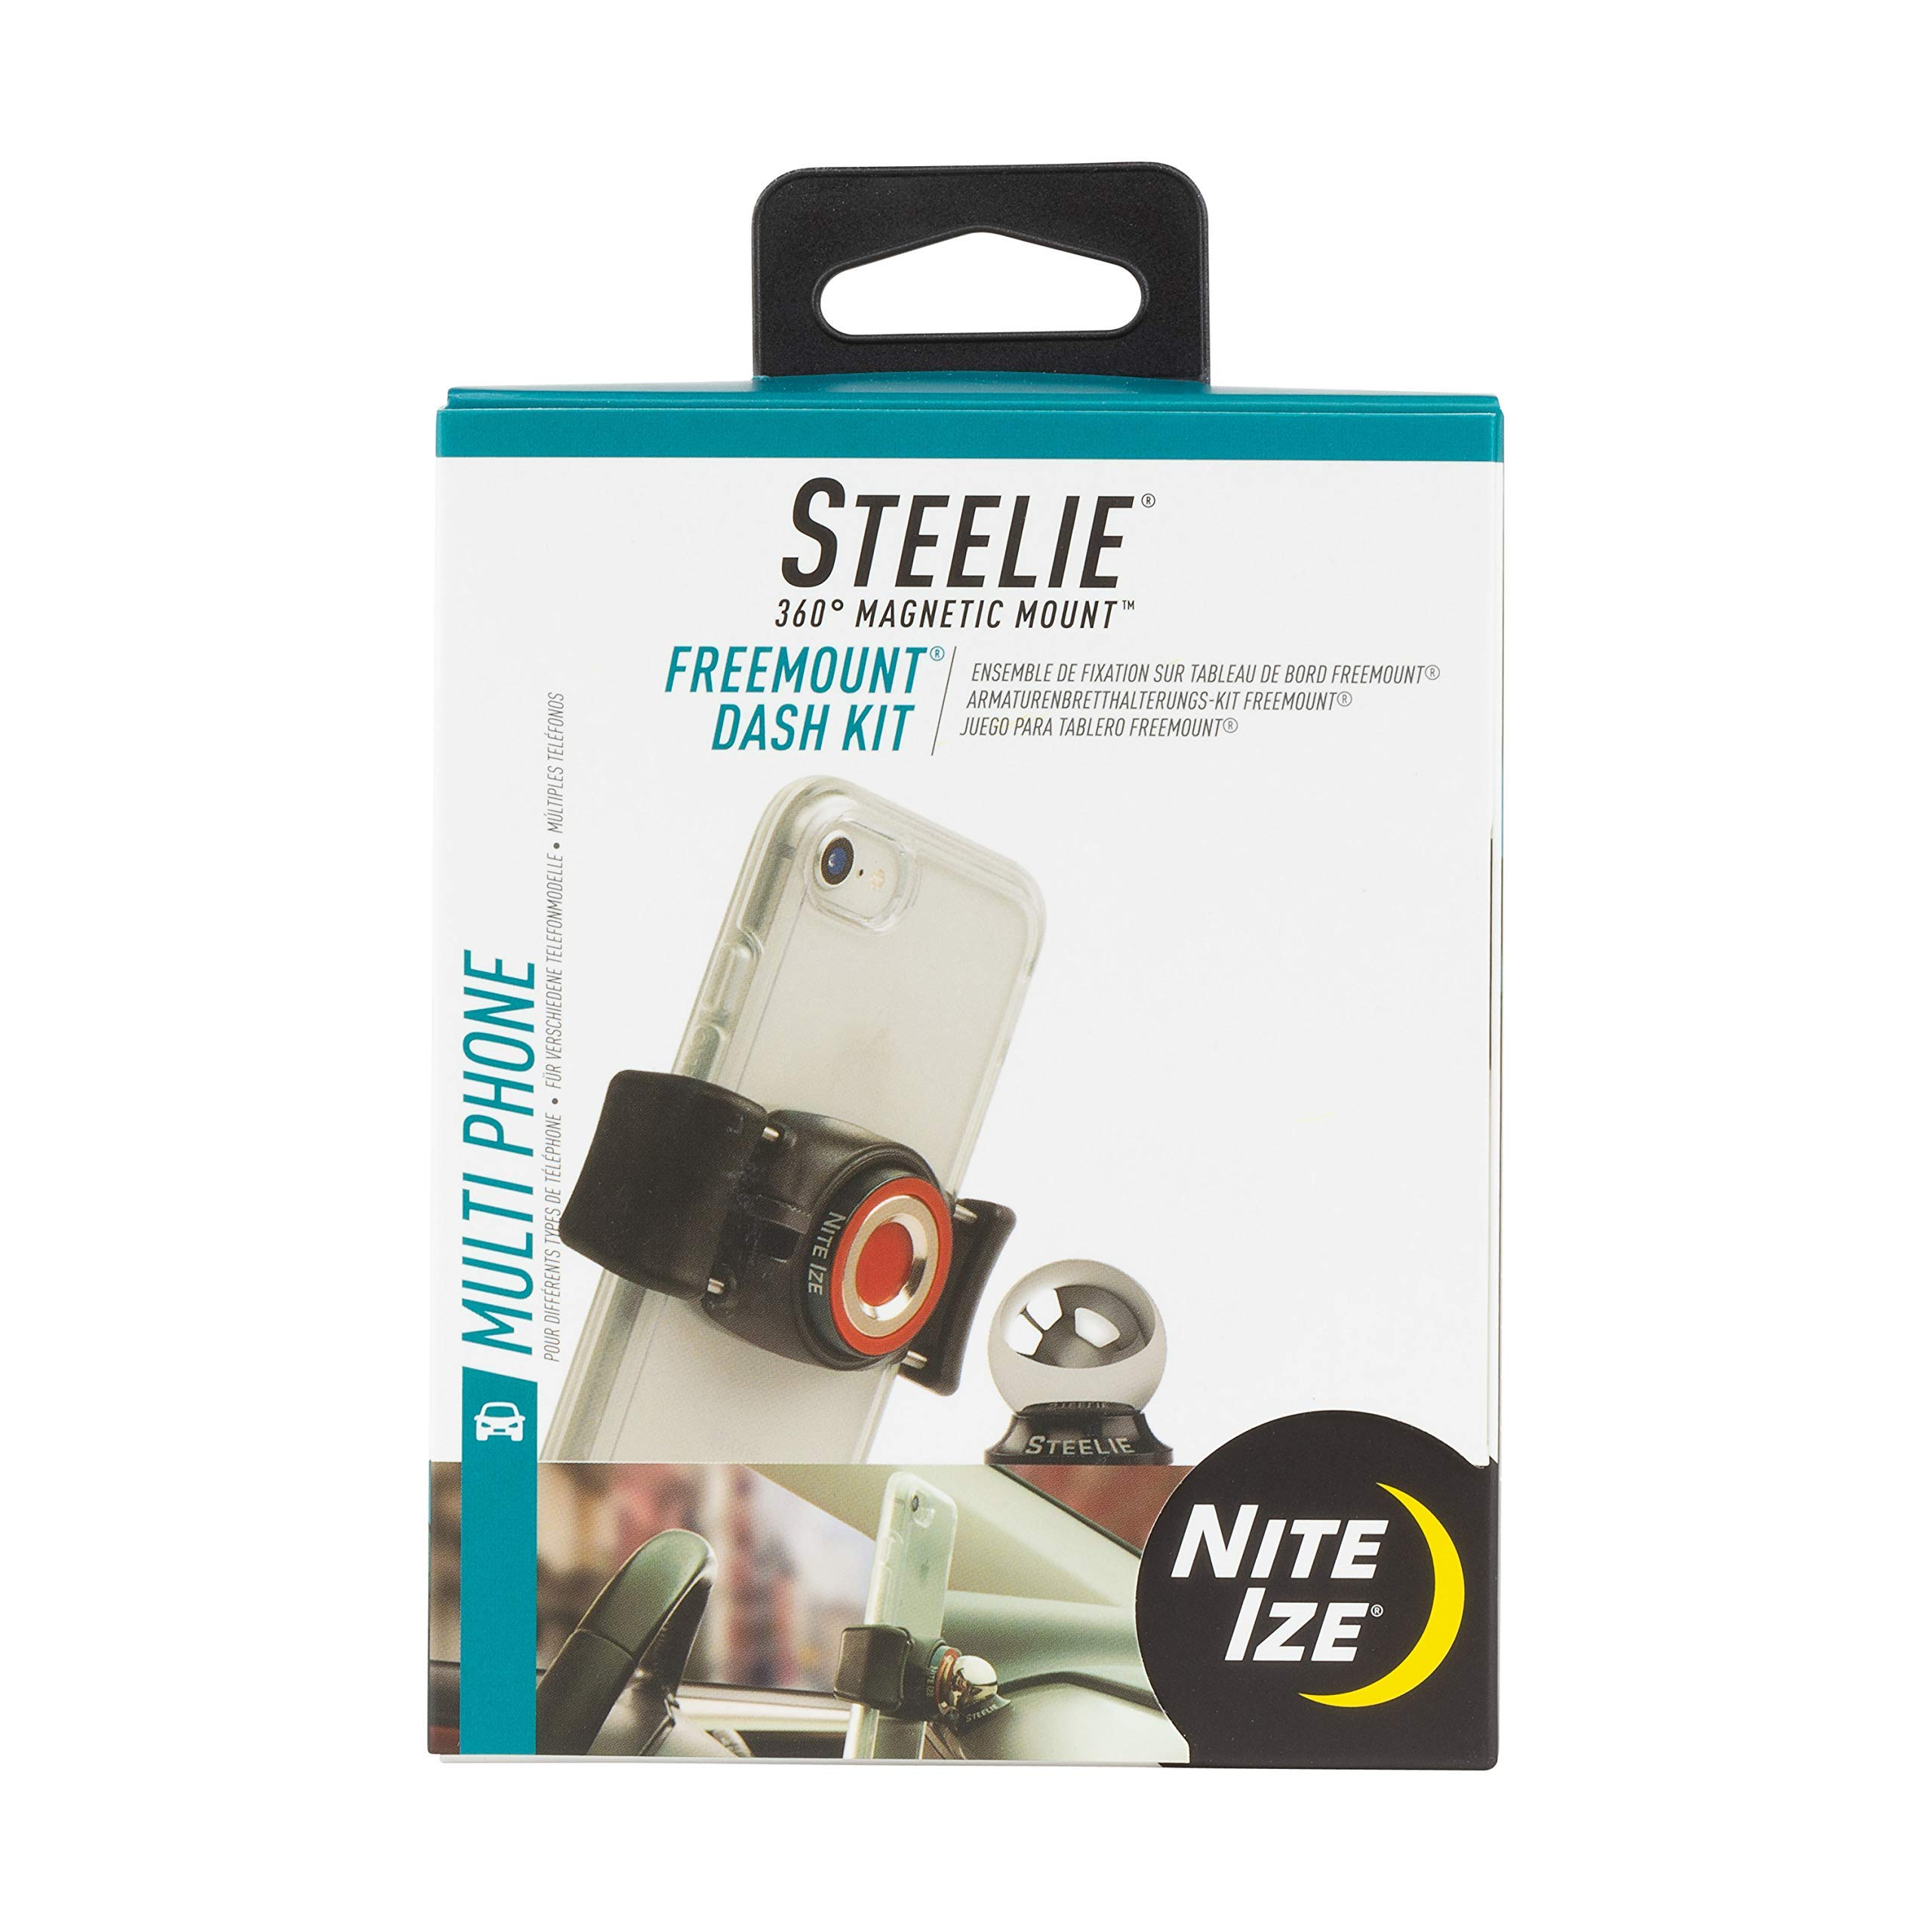 Nite Ize Original Steelie Freemount Dash Kit - Adjustable Magnetic Bracket + Car Dash Mount for Smartphones (Renewed) by Nite Ize